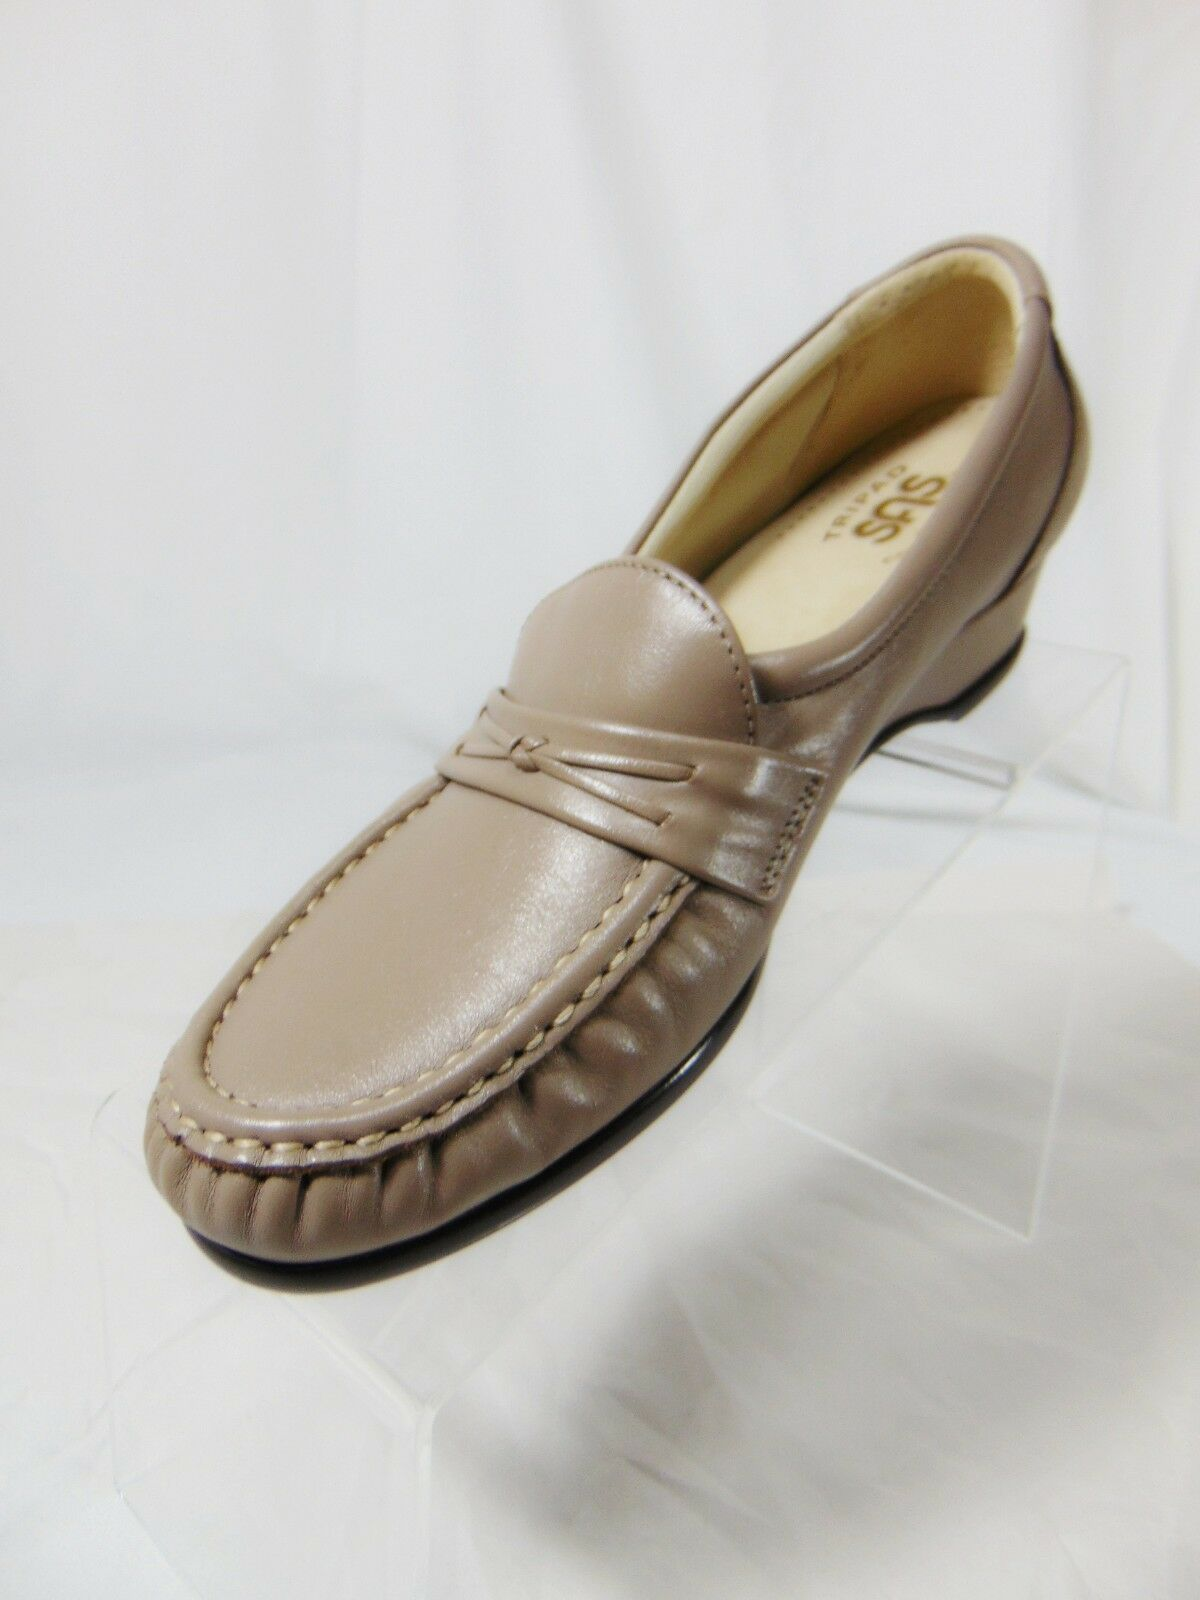 SAS Easier Women's Low Wedge Heel Moccasin Moccasin Moccasin Loafers shoes 7.5 M Mocha Made USA 4f7acd